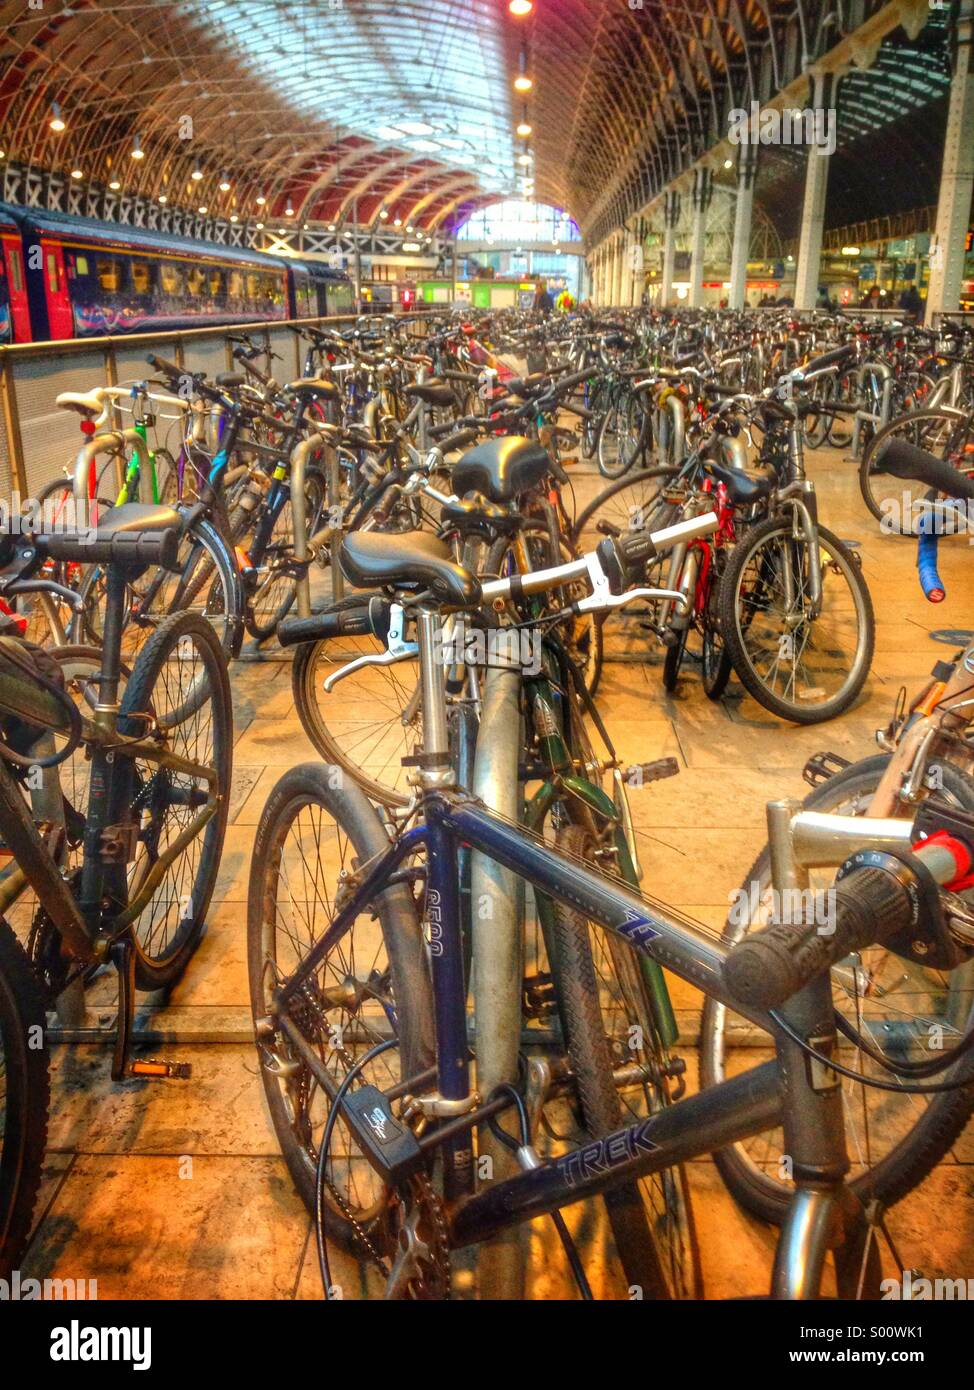 Collection of bicycles - Stock Image